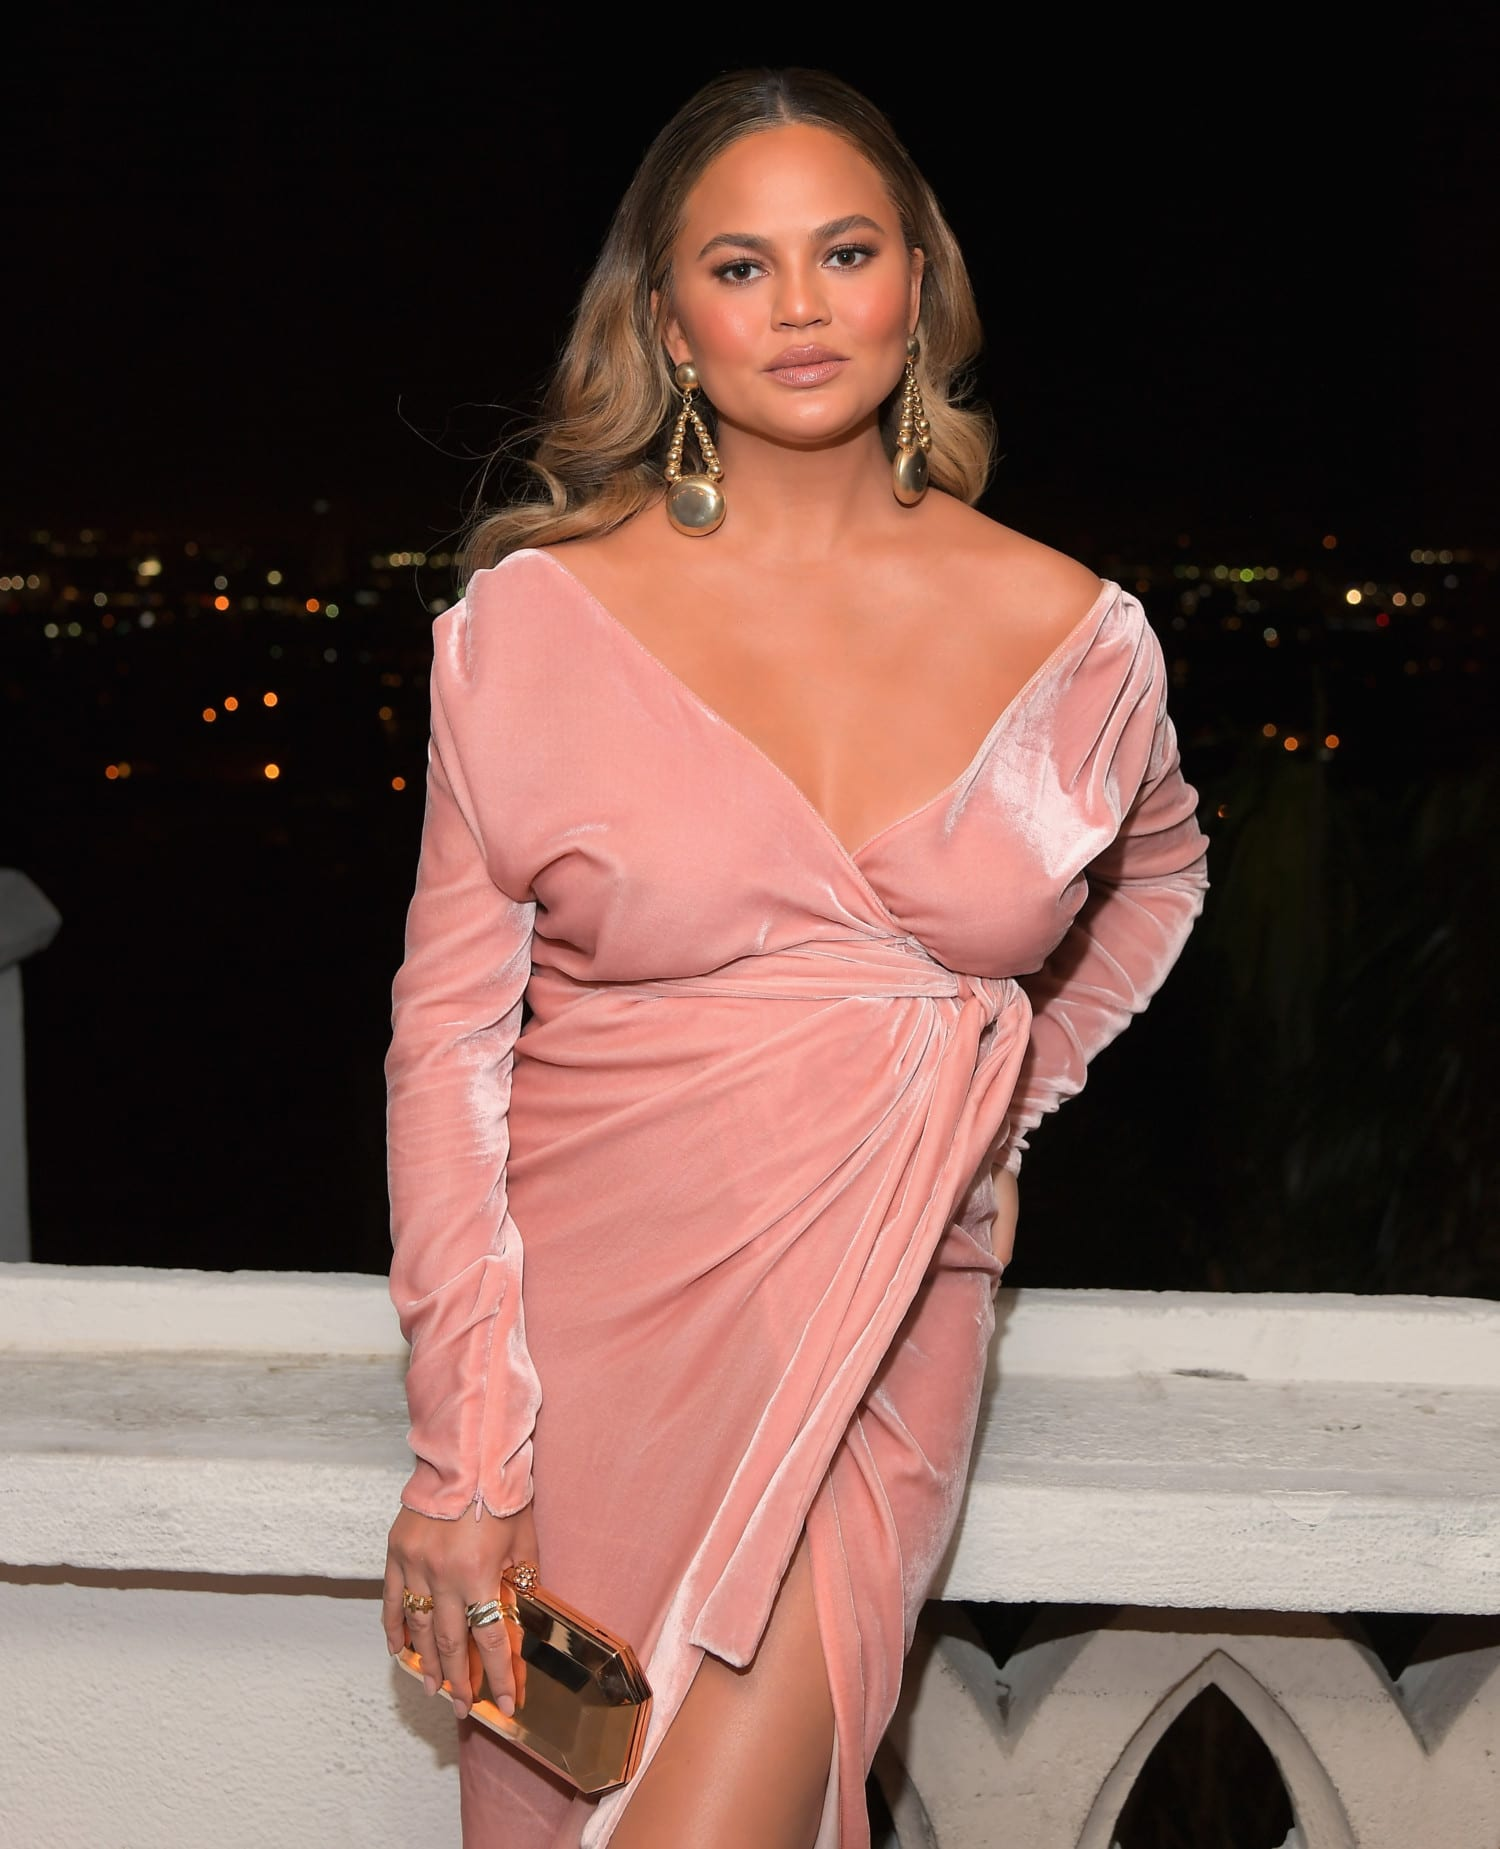 chrissy teigen photo